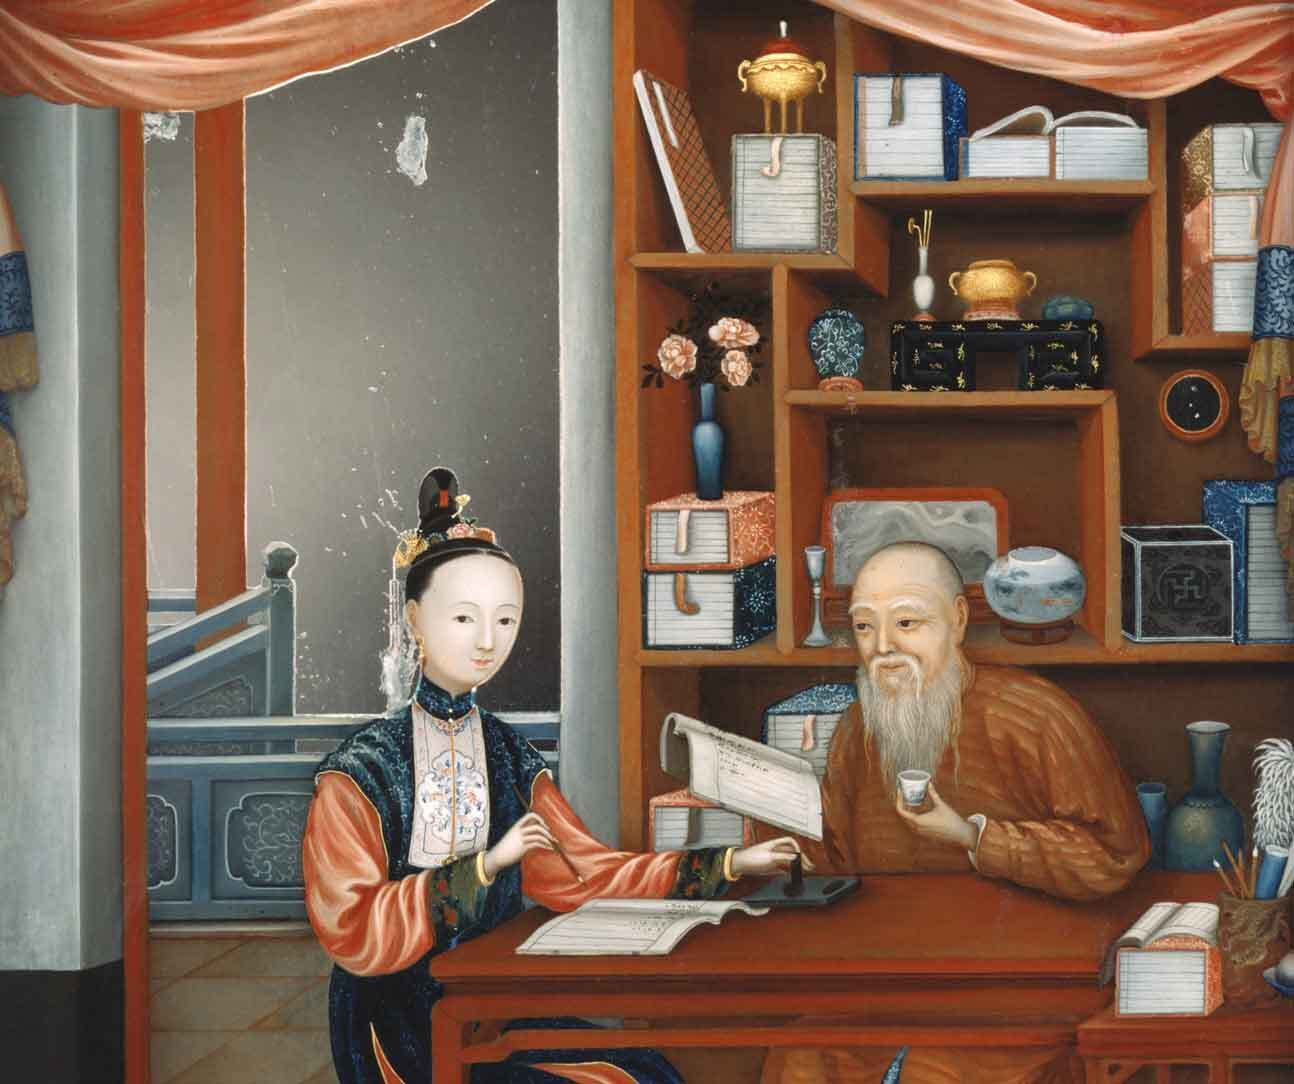 Chinese Scholar and Student in an Interior